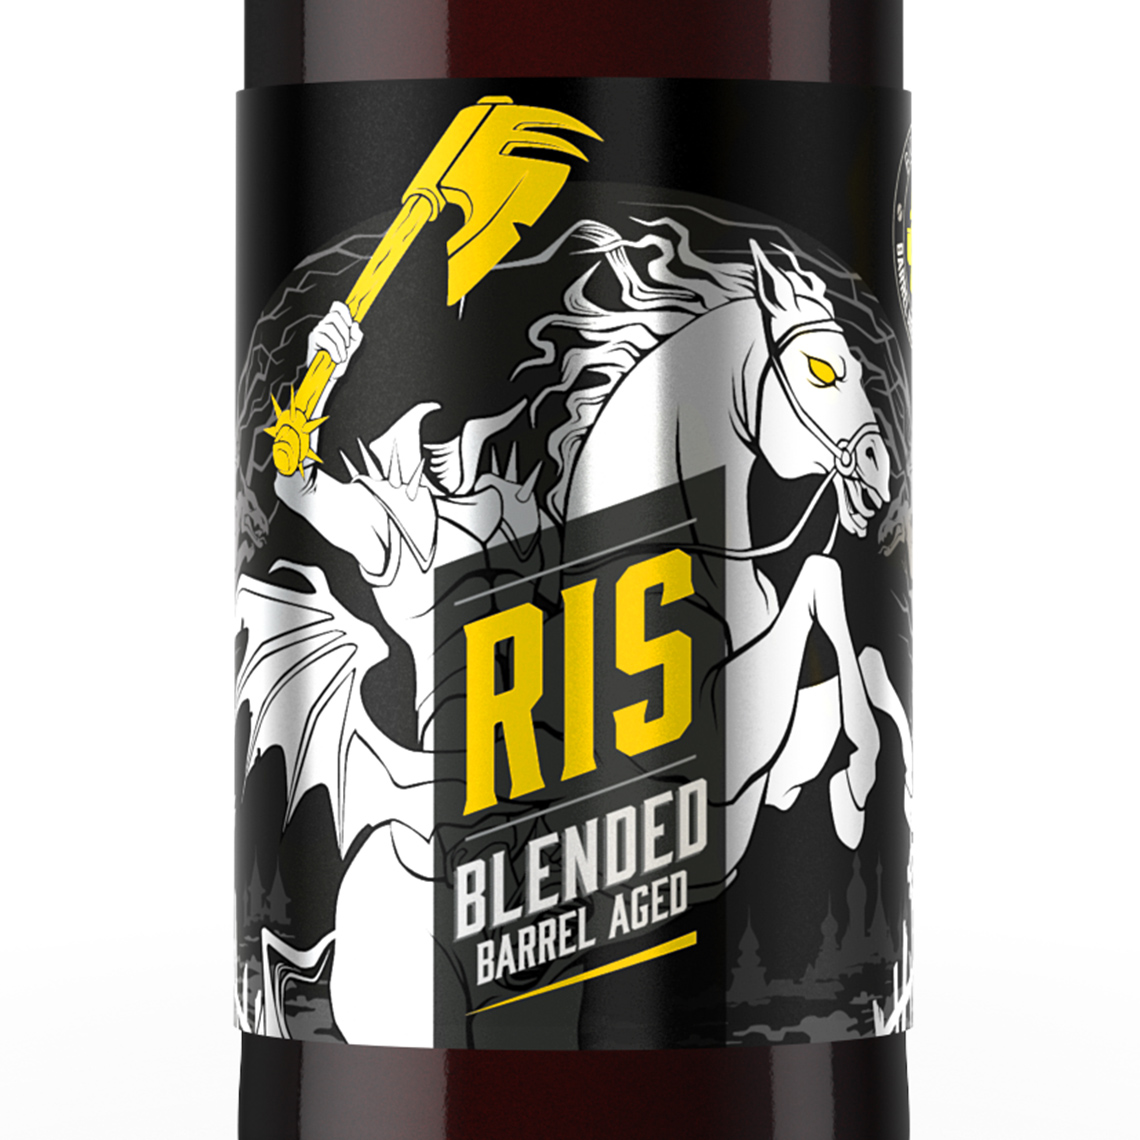 Birbant RIS Blended